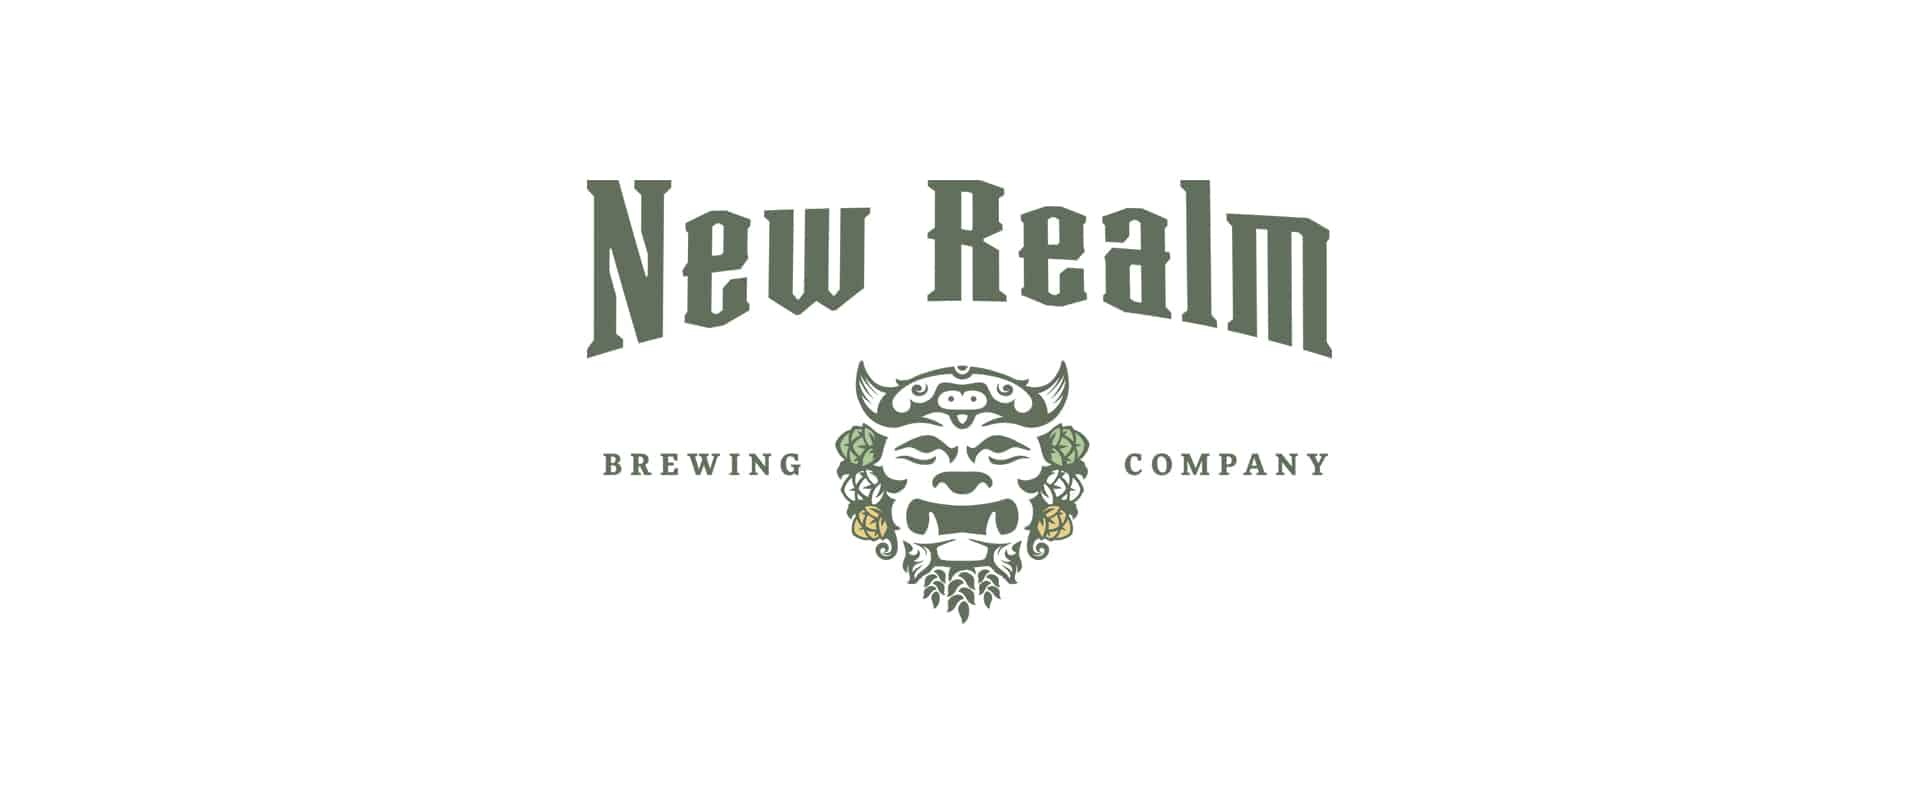 New Realm Brewing craft beer branding logo design